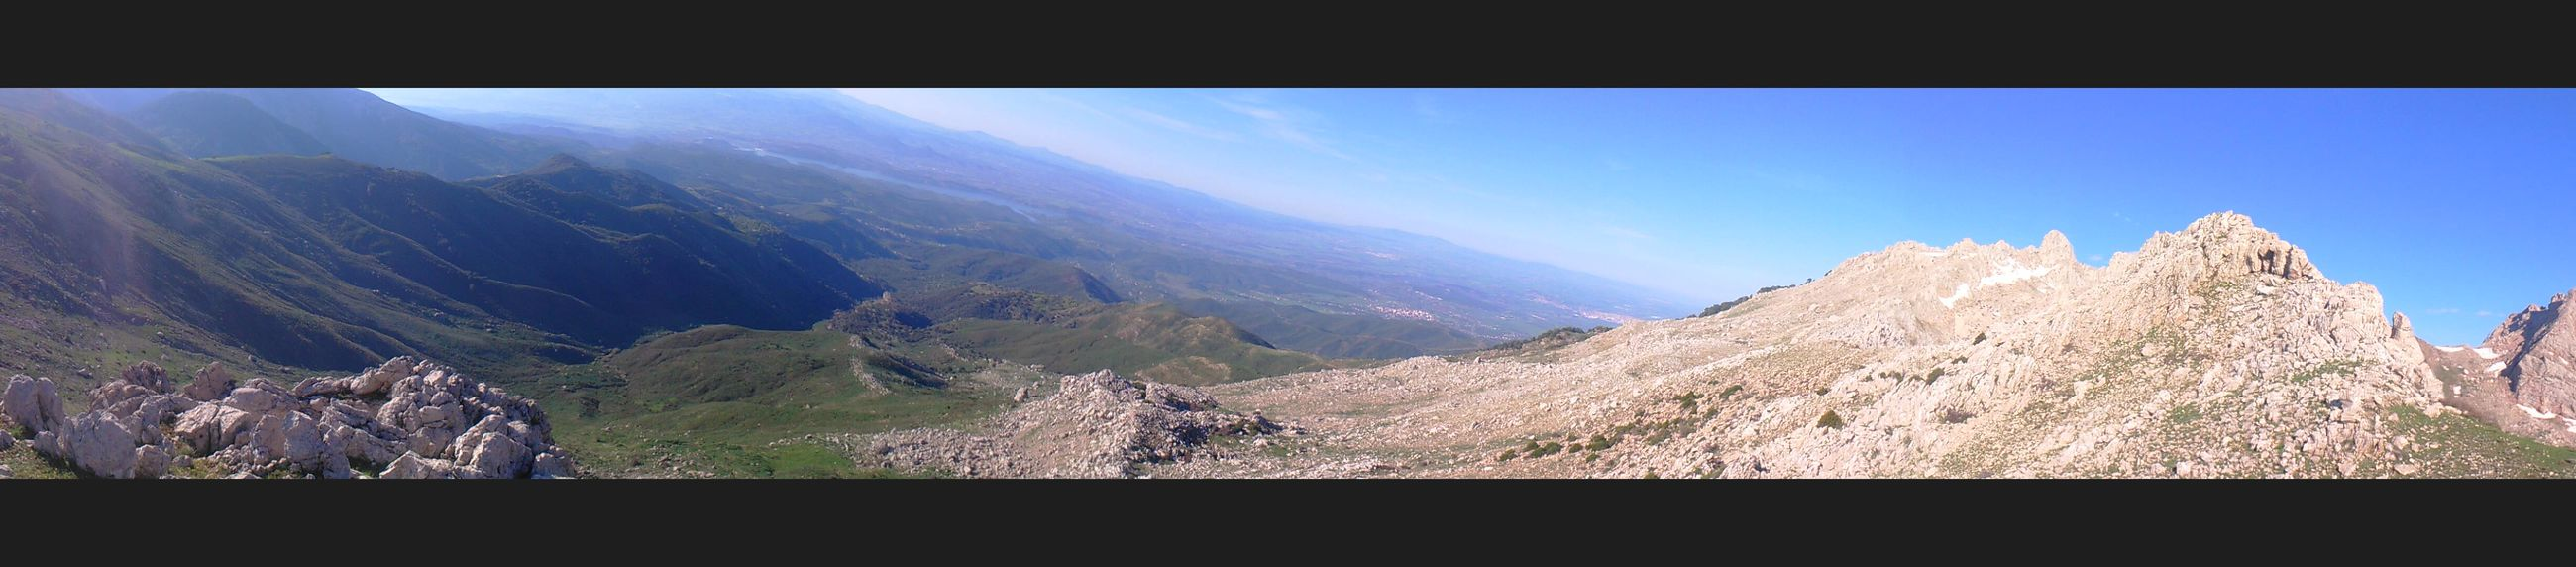 Outdoors Tranquility Mountain Range Panorama Algeria Djurdjura North Africa Tikjda Freedom Flying In The Sky Solitude Lac Agoulmim Miles Away No People The Great Outdoors - 2017 EyeEm Awards